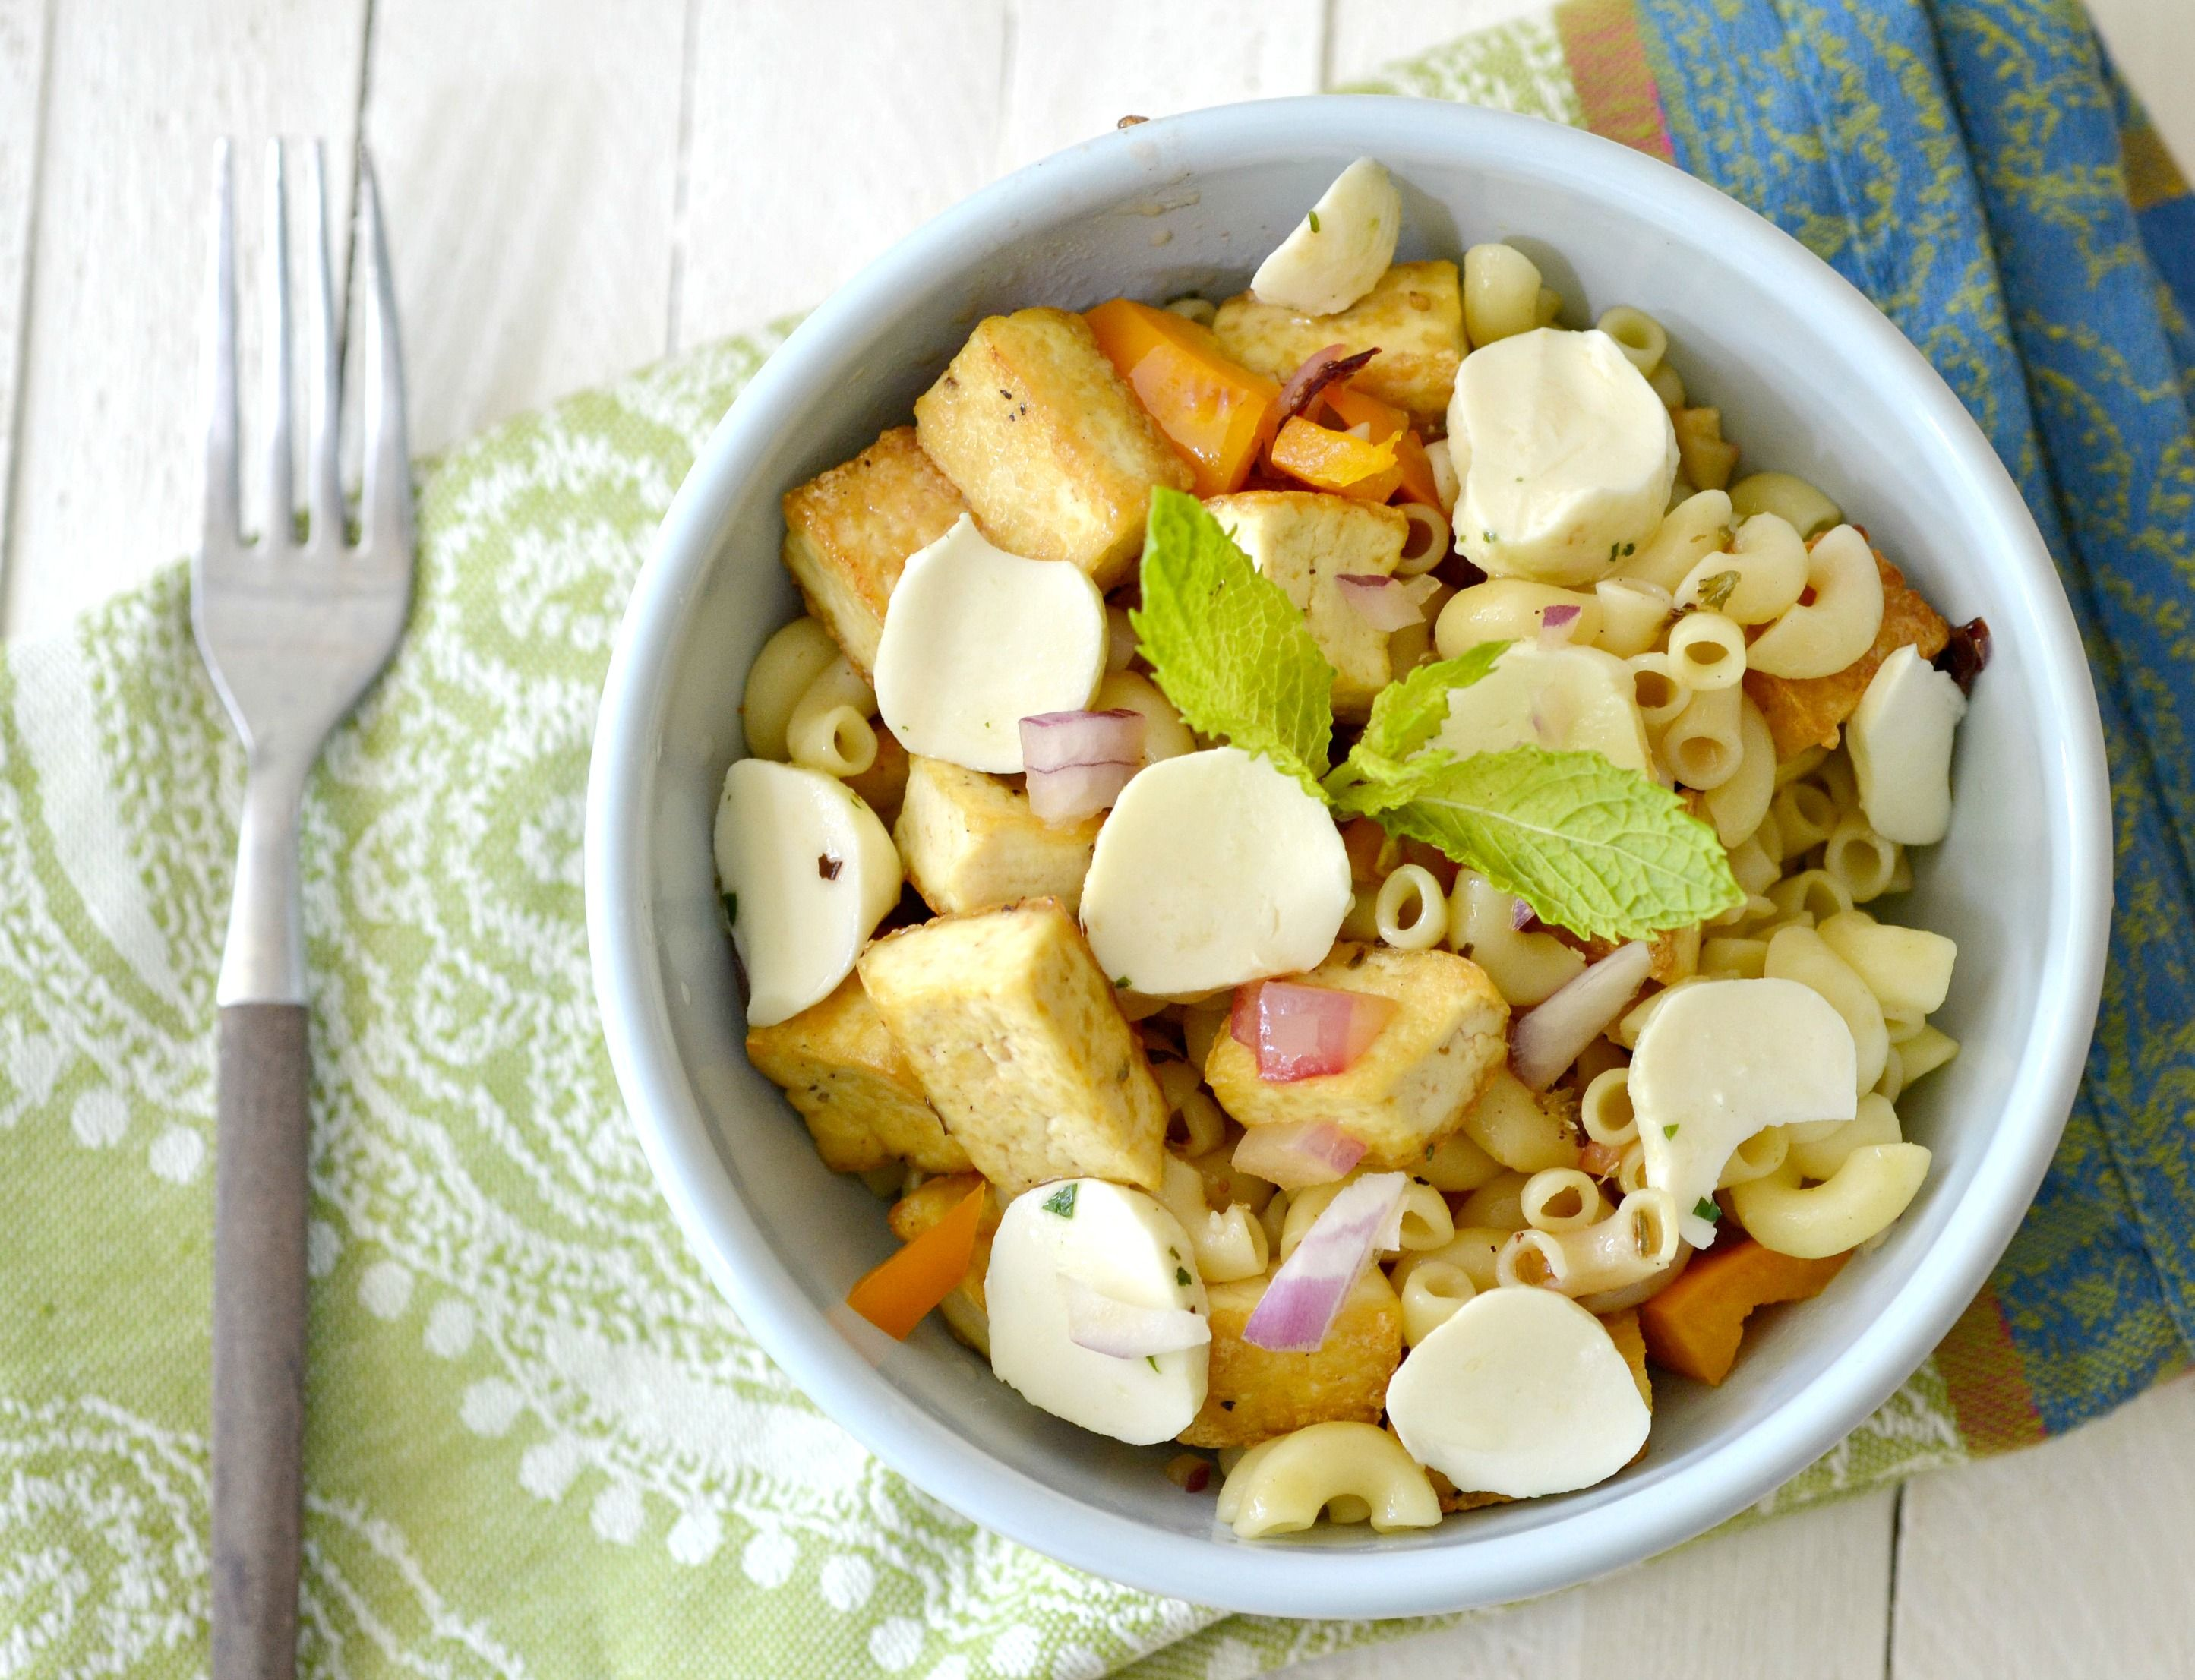 Crispy Tofu Macaroni Salad by nutritionforus: 180 calories, 6g fat, 9g protein, 3g fiber 24g carbs, 5 Weight Watcher Points.   #Salad #Tofu #Macaroni #nutritionforus